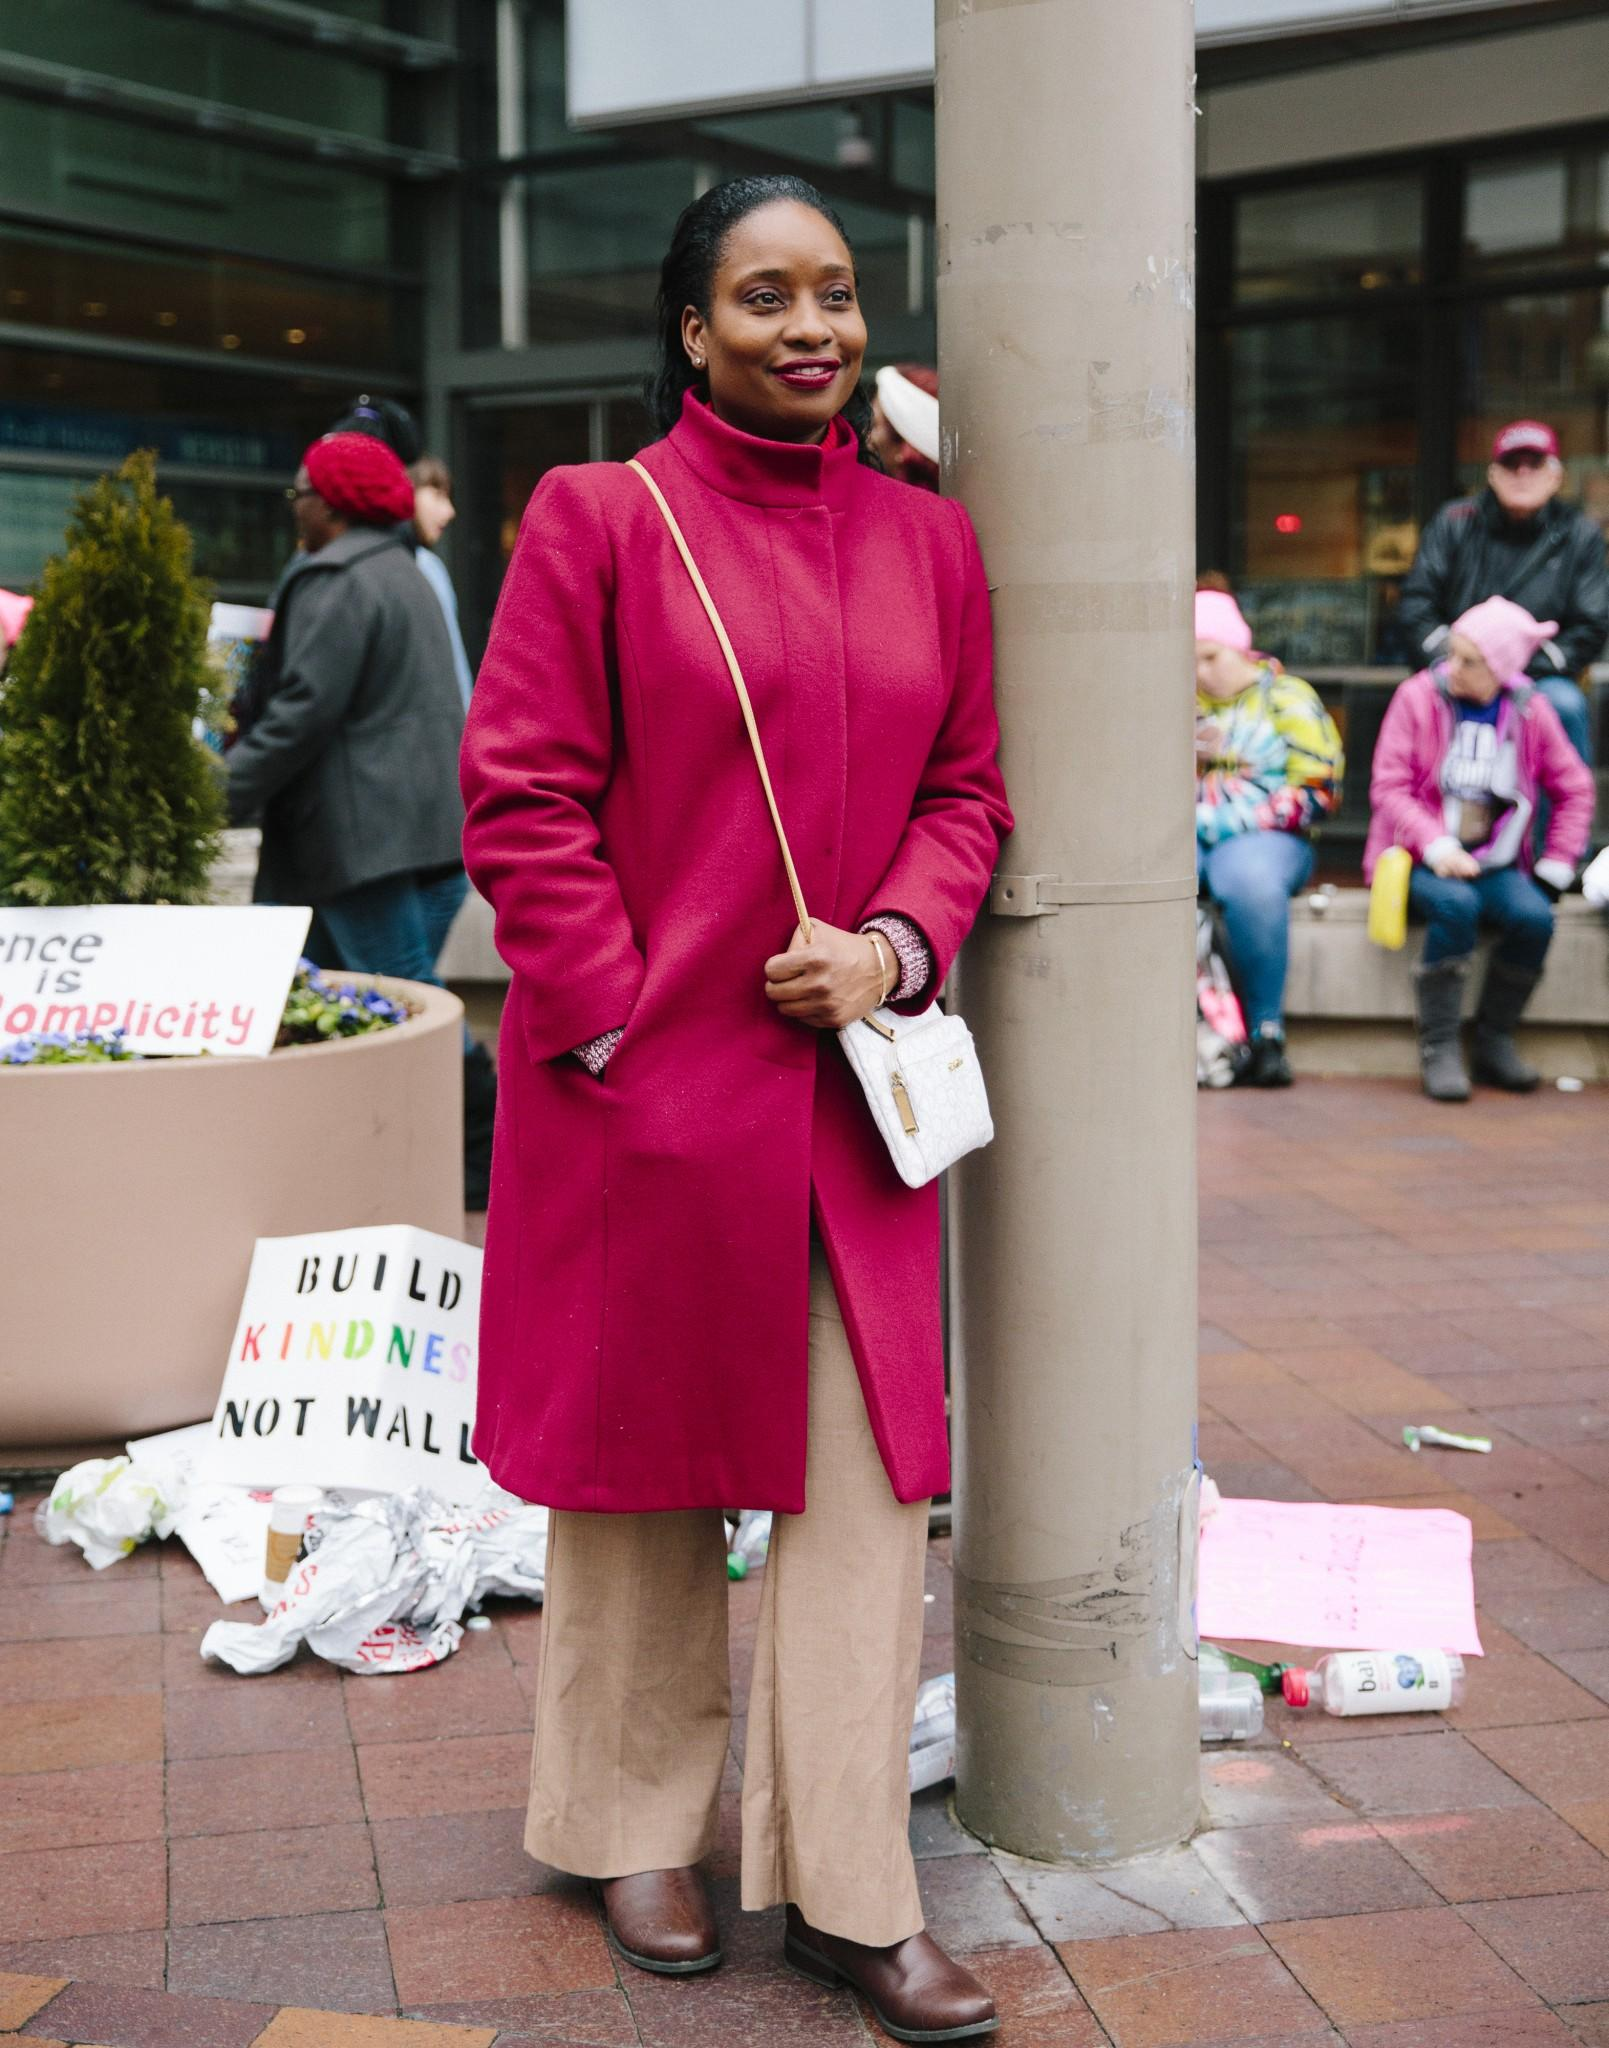 More Amazing Photos You Missed From the Women's March in Washington, D.C.